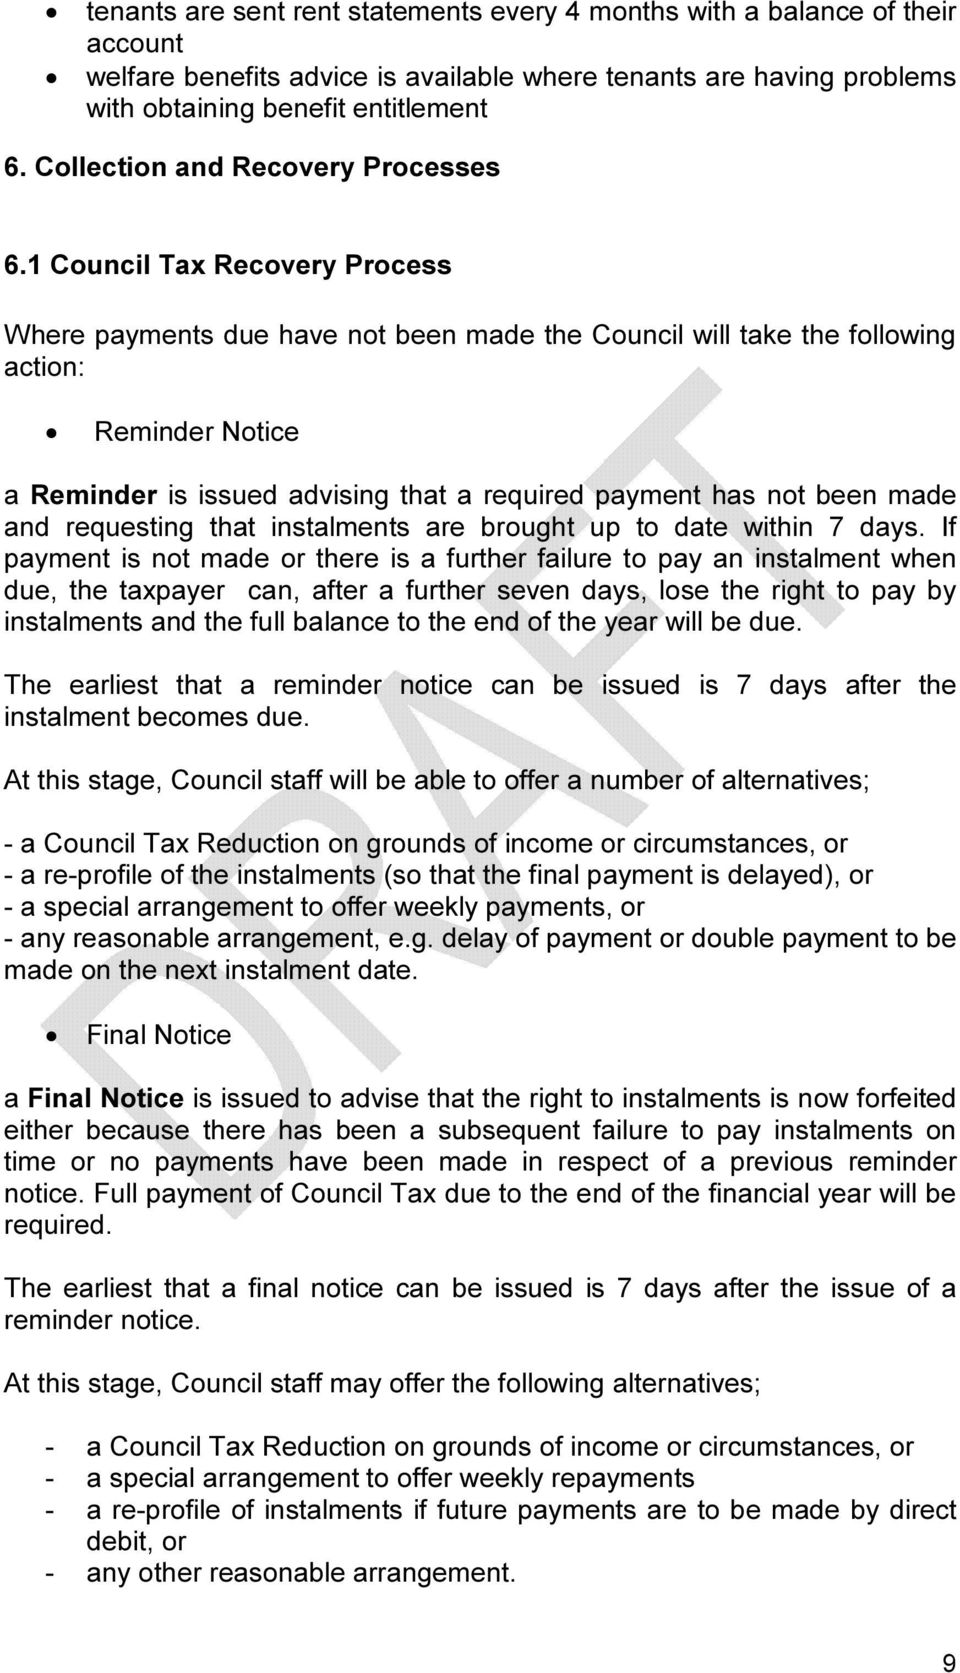 1 Council Tax Recovery Process Where payments due have not been made the Council will take the following action: Reminder Notice a Reminder is issued advising that a required payment has not been